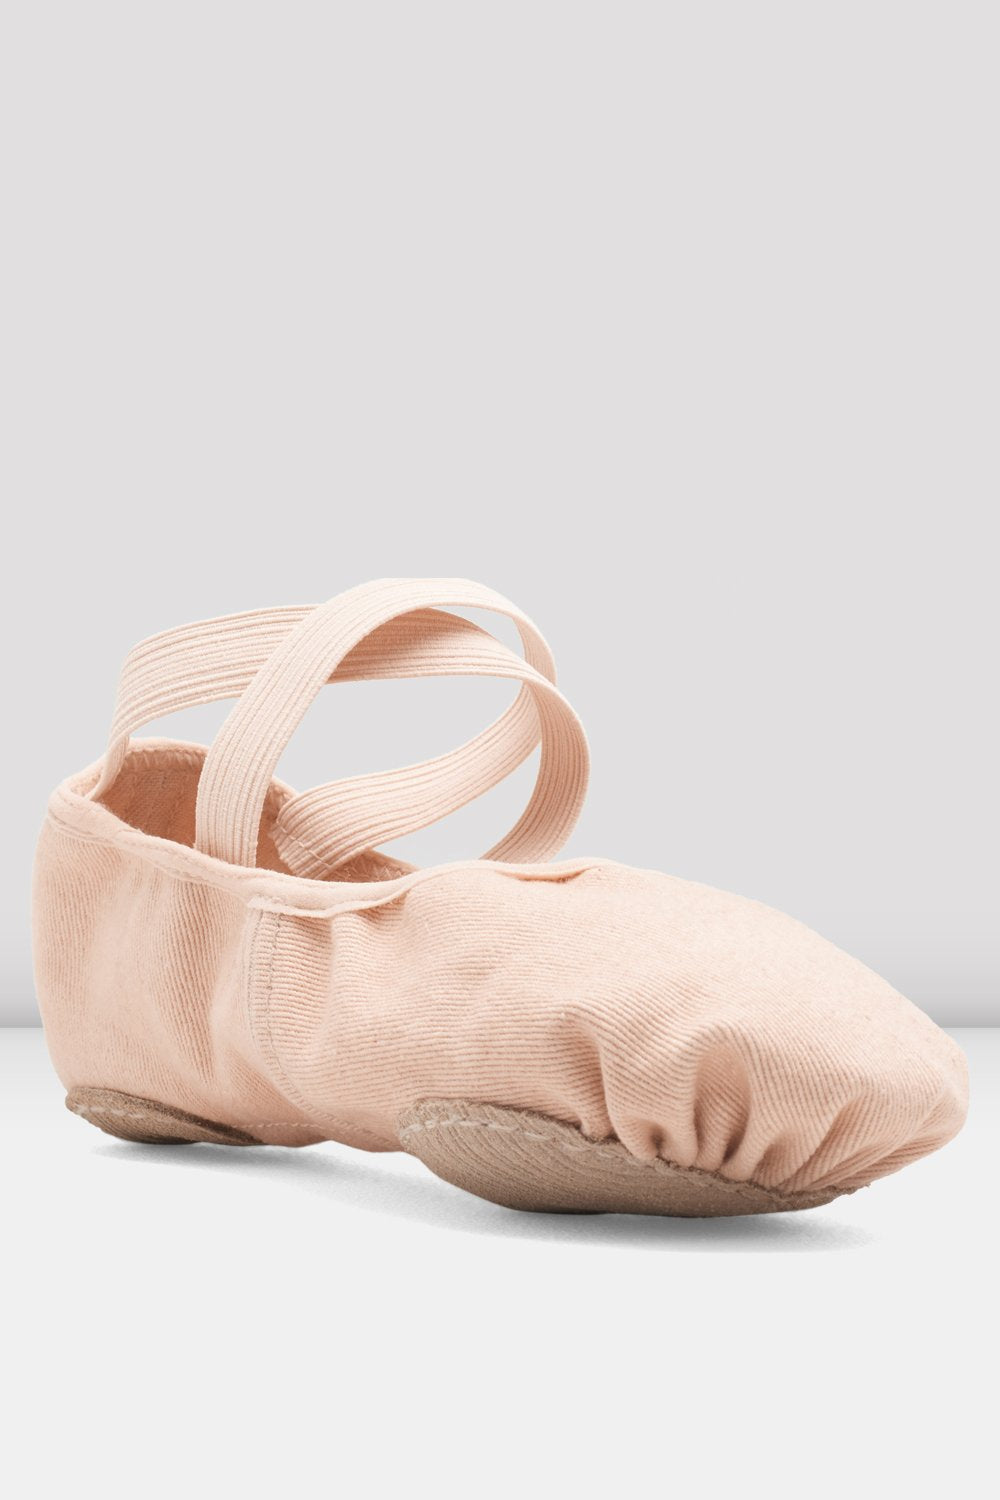 Pink canvas Bloch Ladies Infinity Stretch Canvas Ballet Shoes single shoe focus on toe of shoe